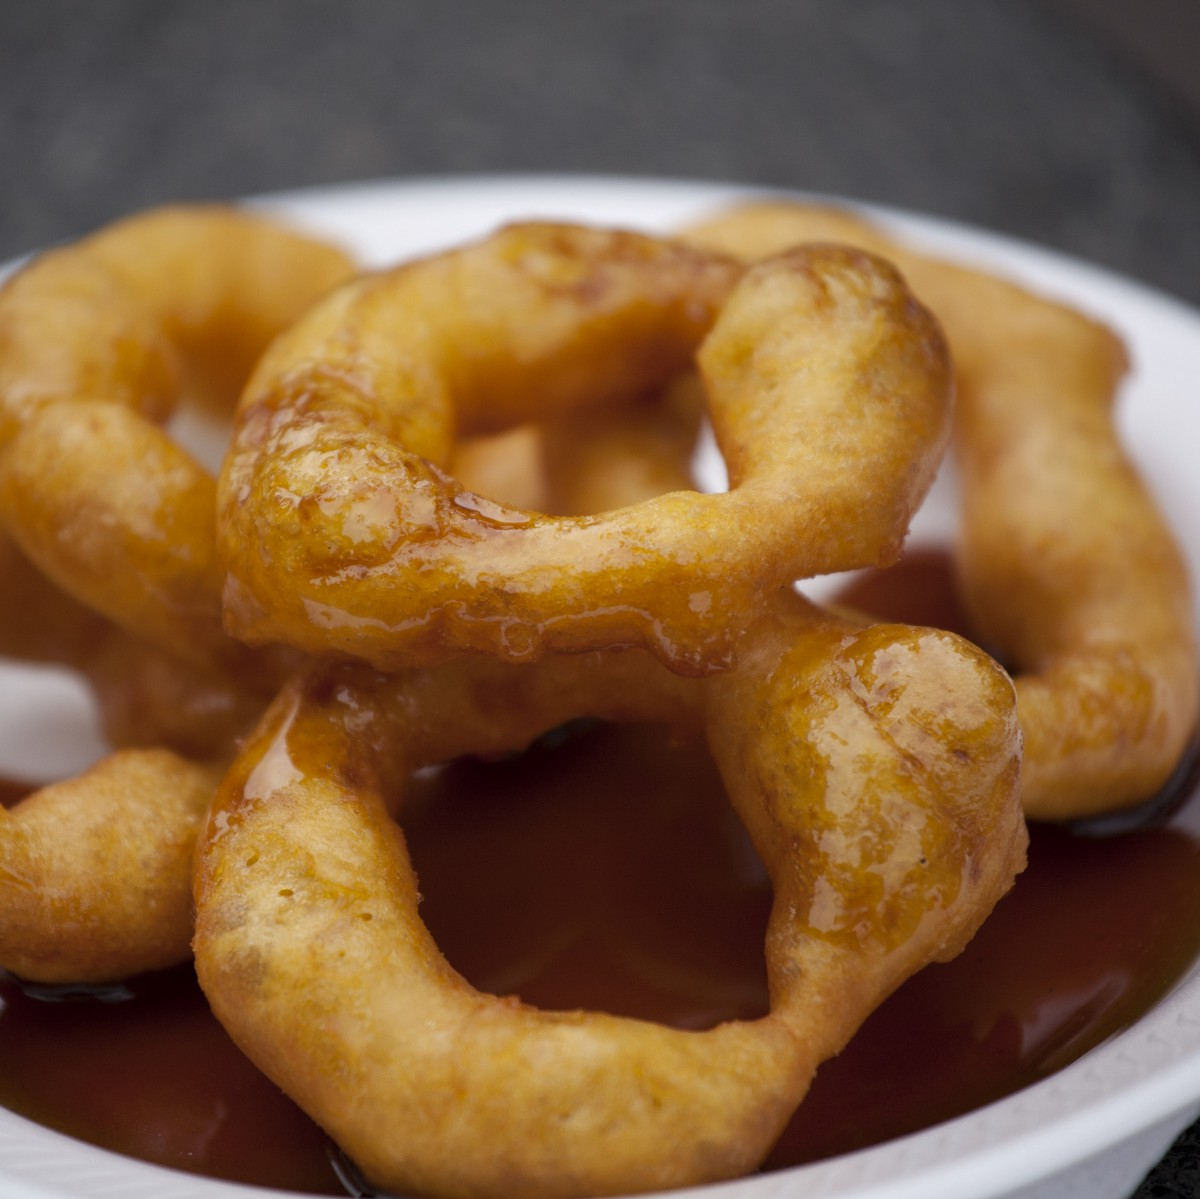 In Lima, Fried Dough Is Both Indulgent and Revolutionary